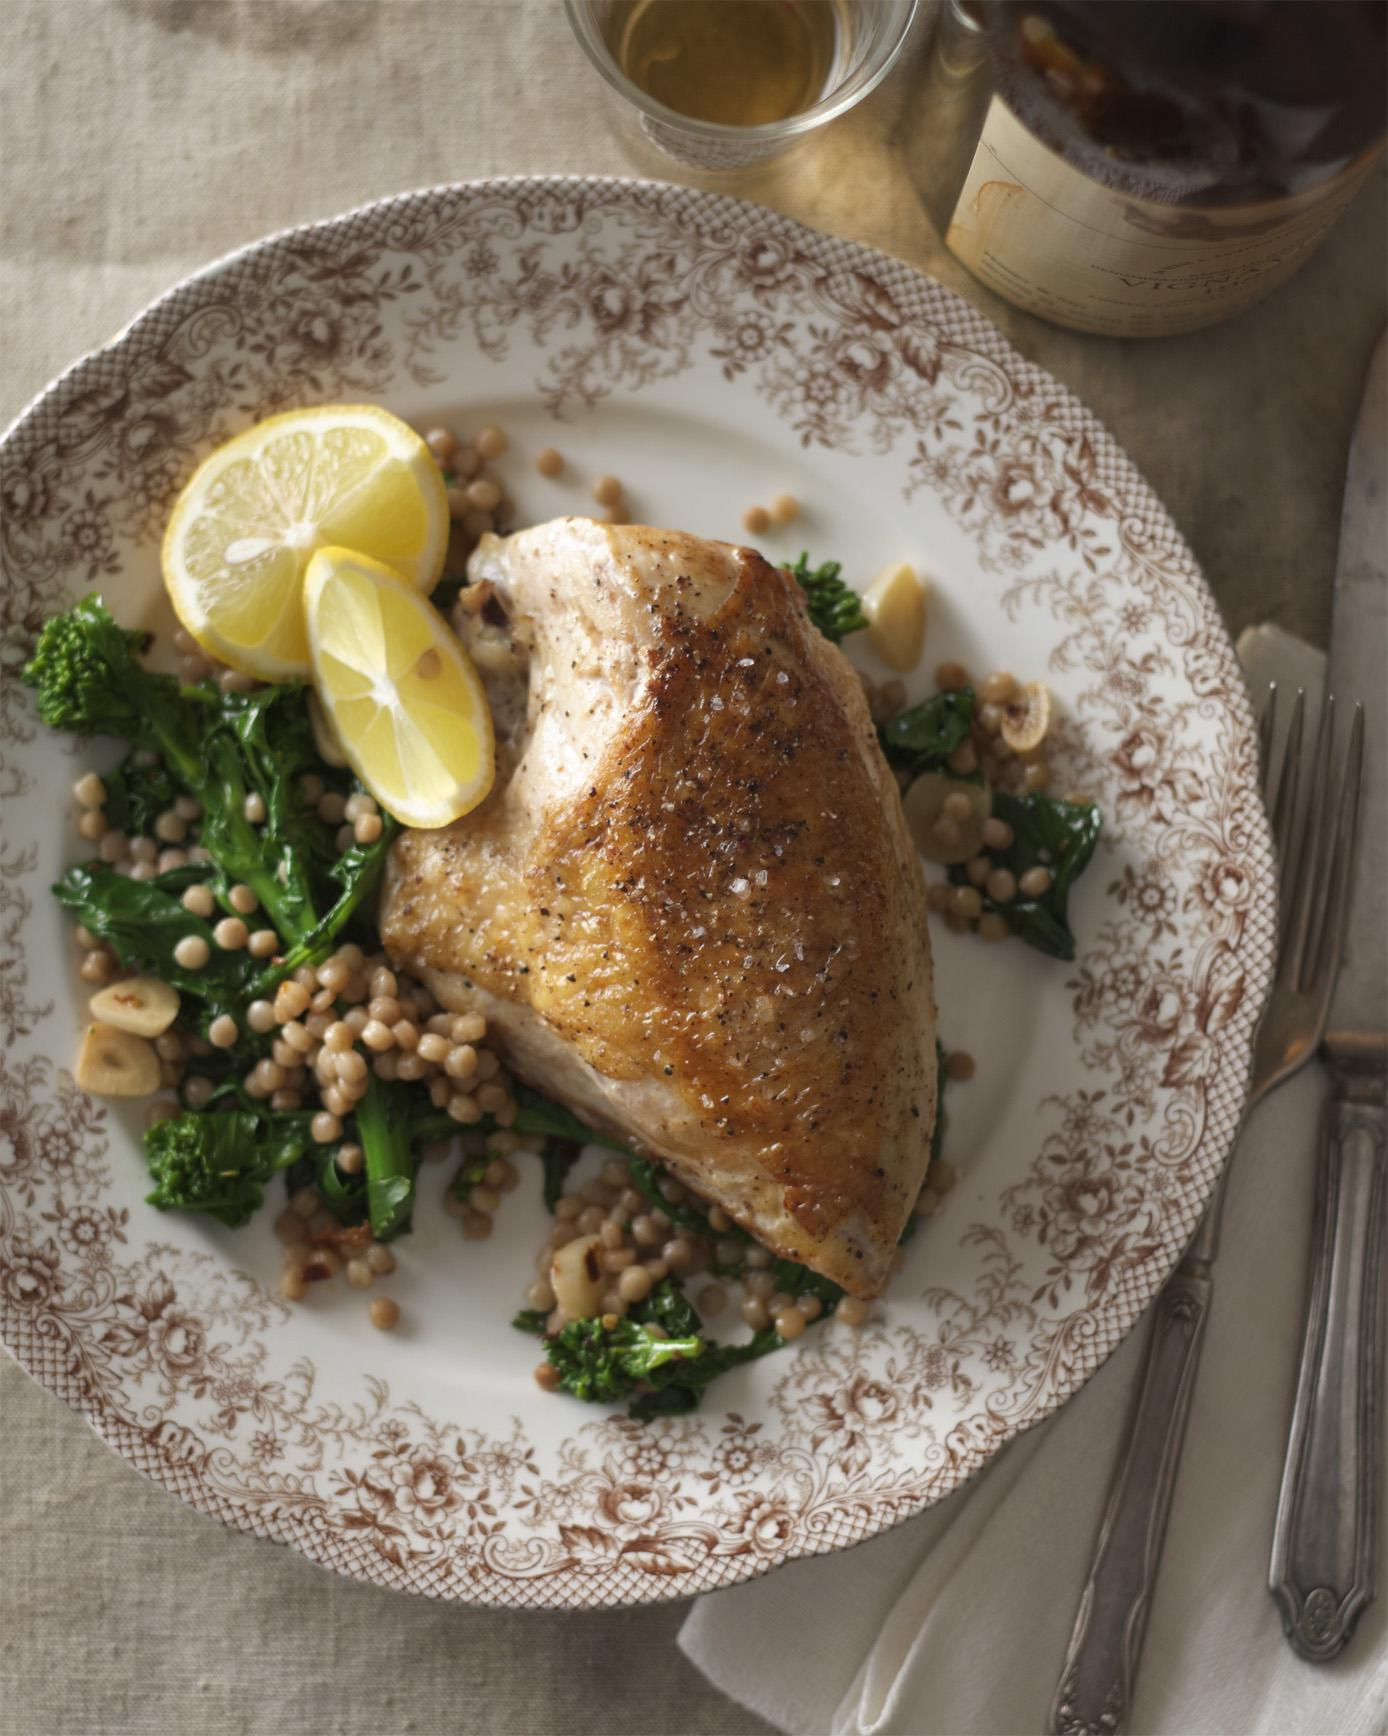 Pan-Roasted Chicken Breasts with Couscous, Broccoli Rabe, & Spicy Olive Oil